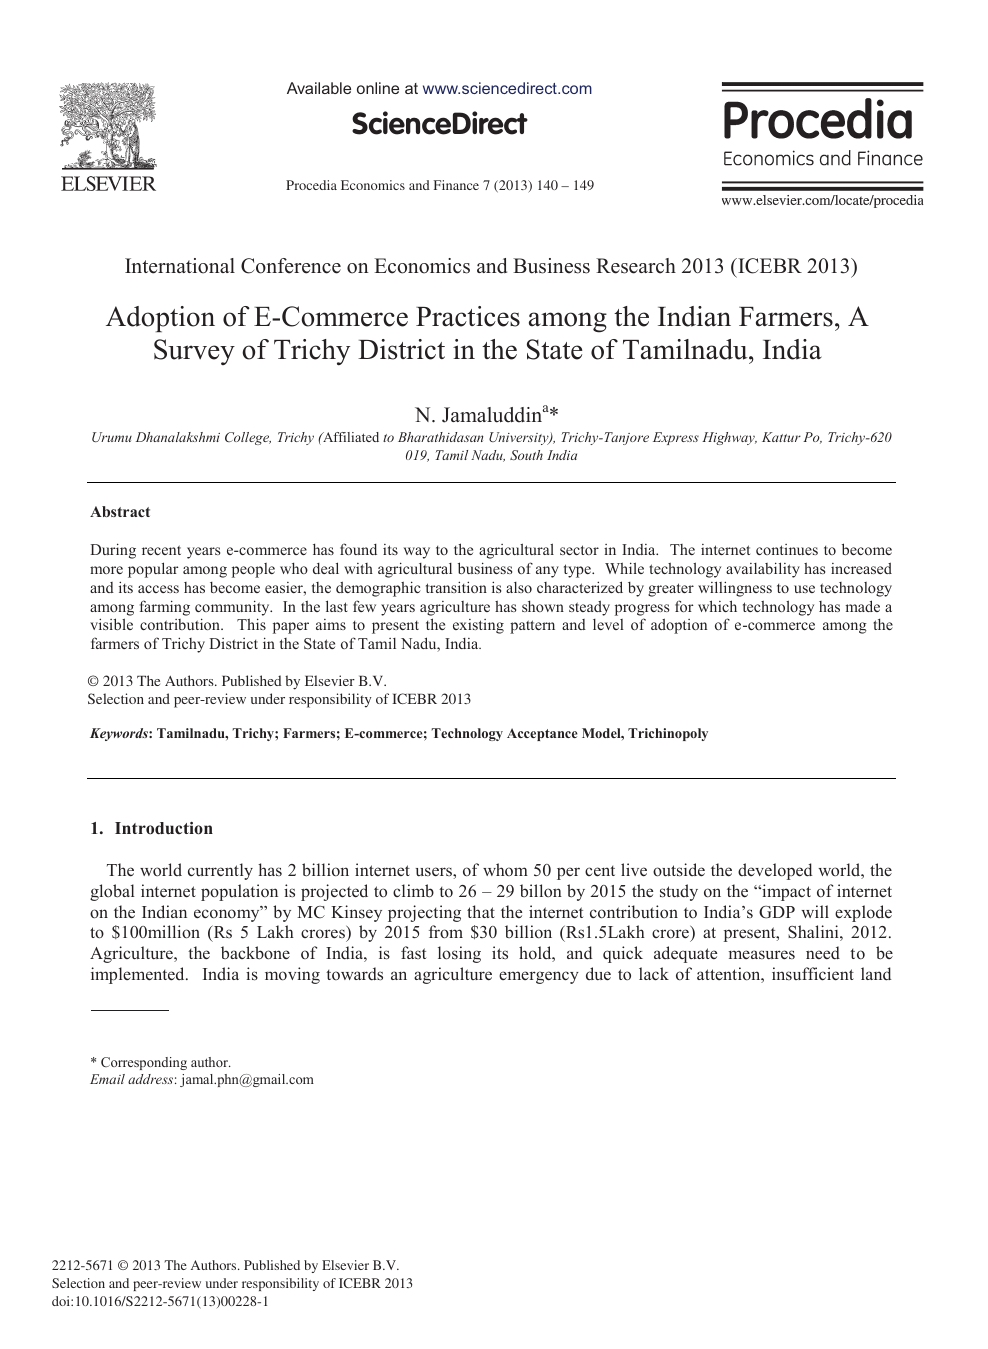 Adoption of E-commerce Practices among the Indian Farmers, a